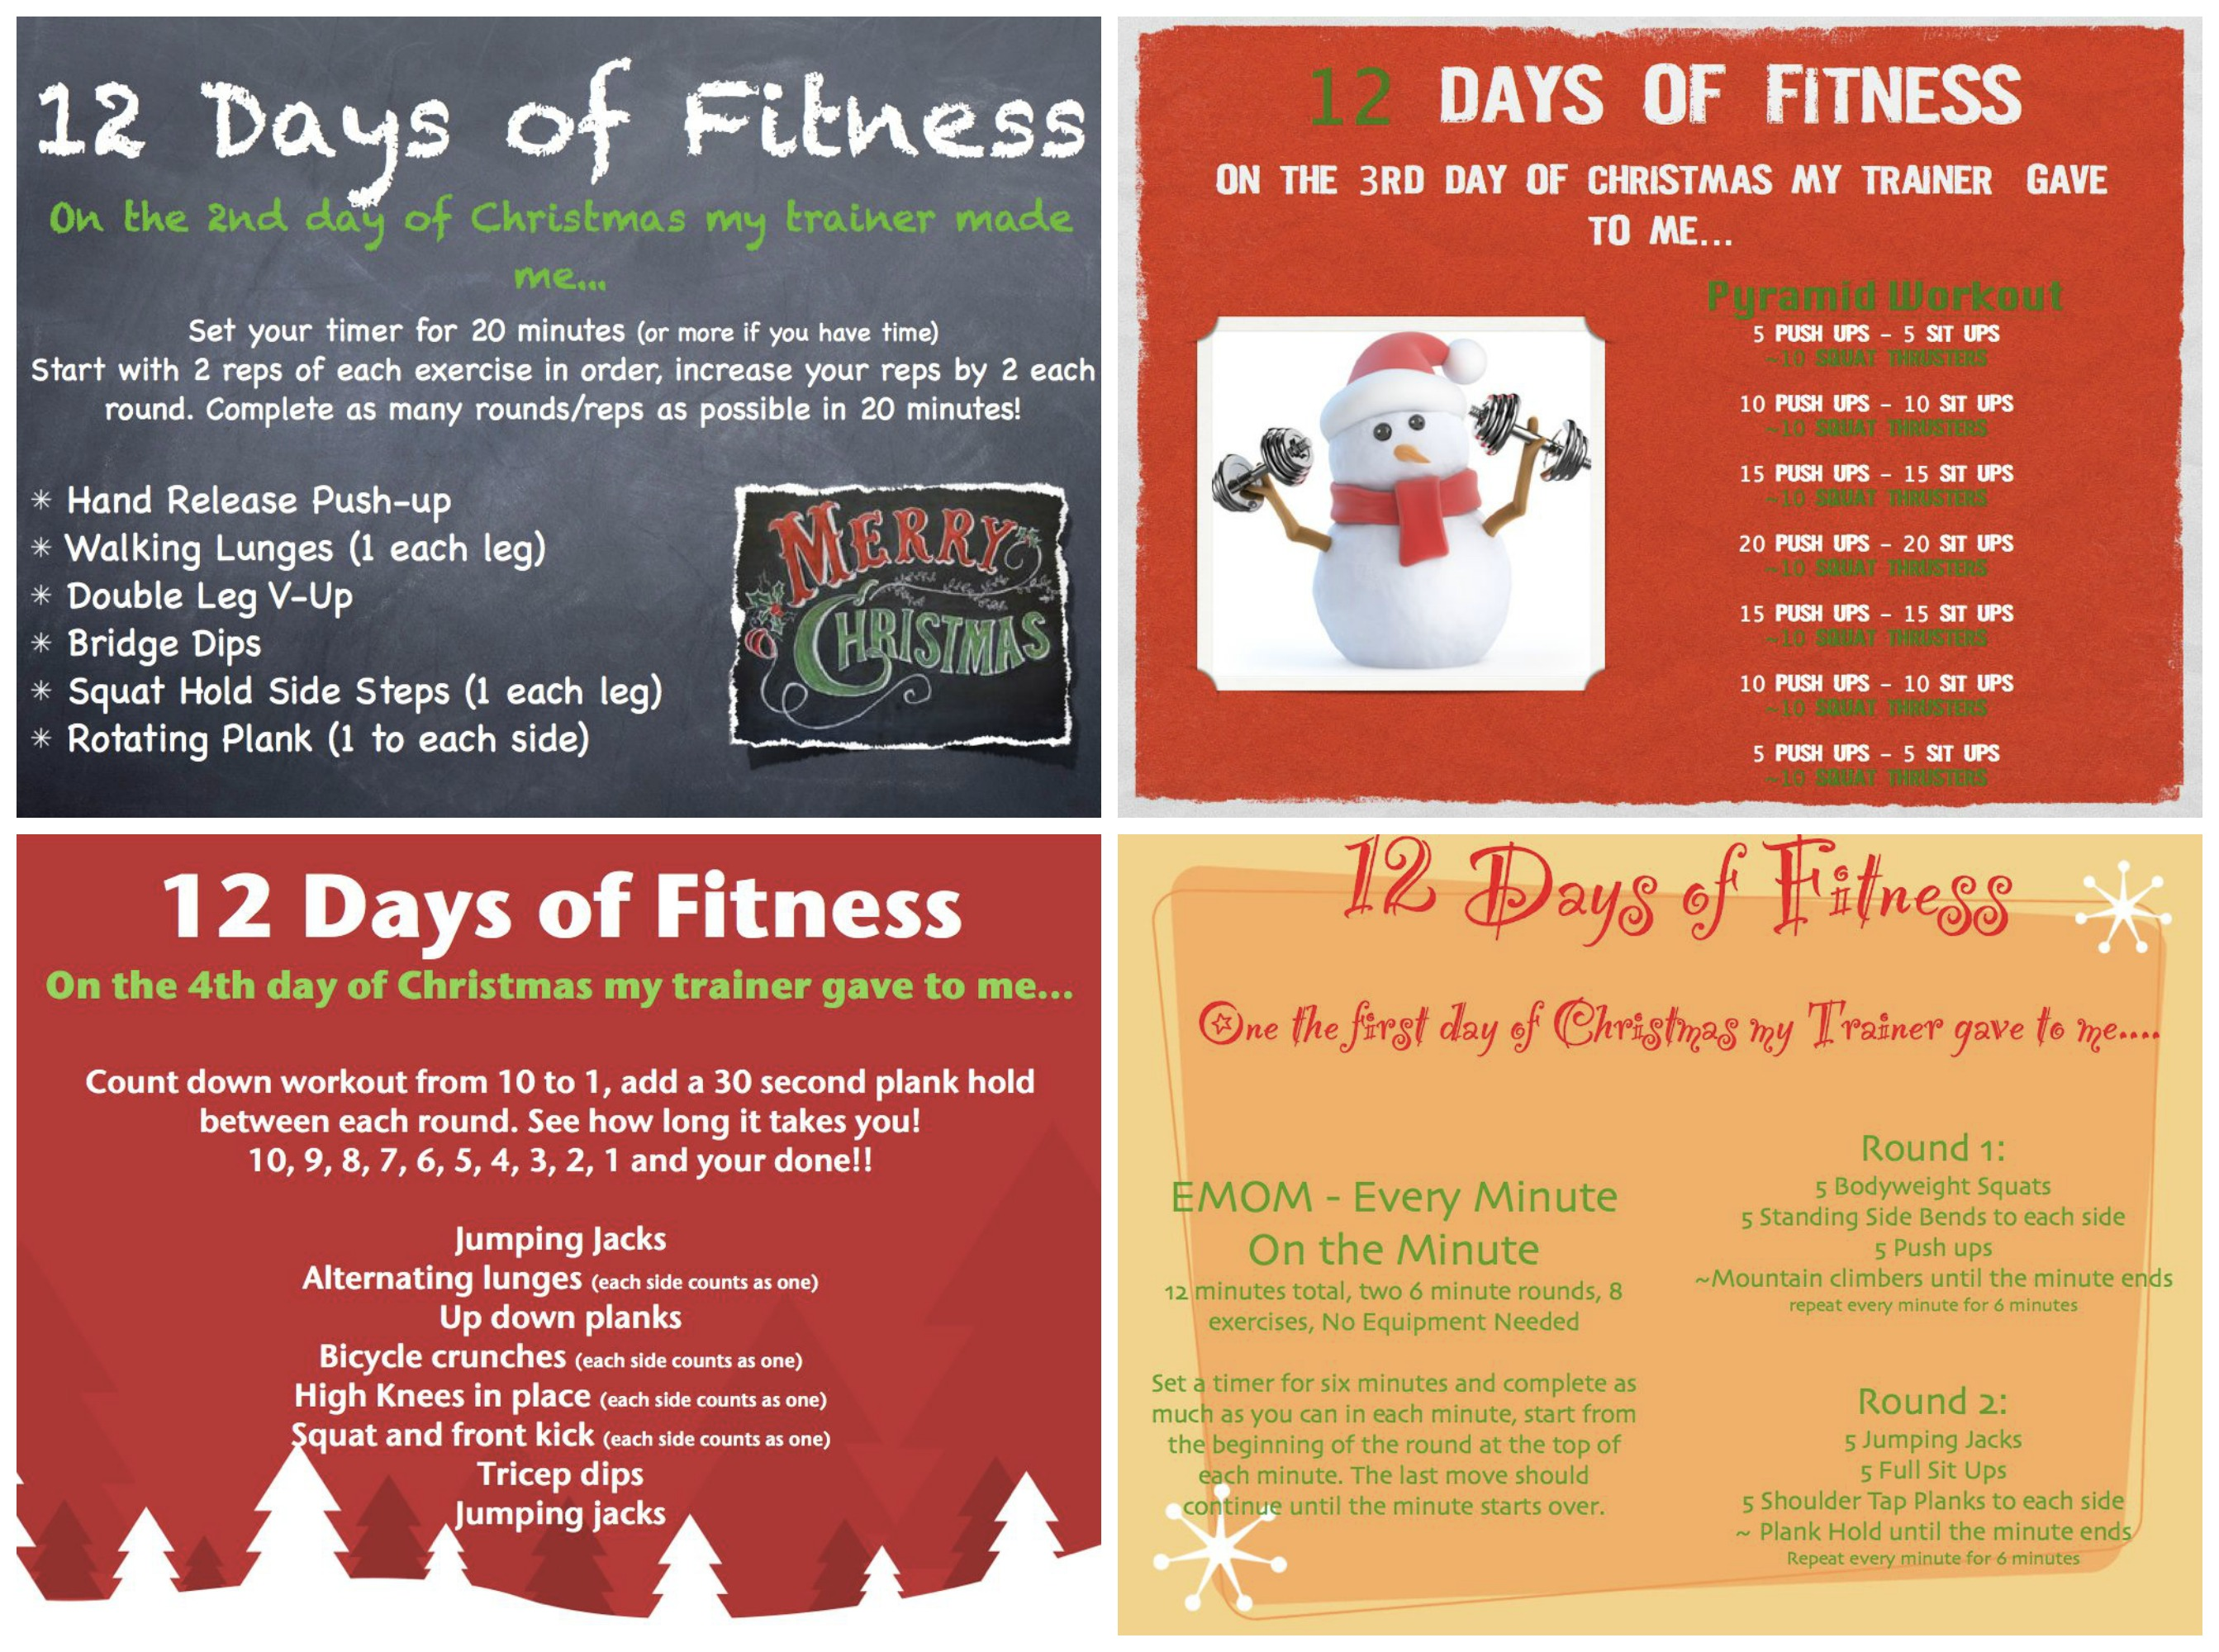 12 Days of Fitness! CHECK it out: https://www.facebook.com/ResurrectionFitness